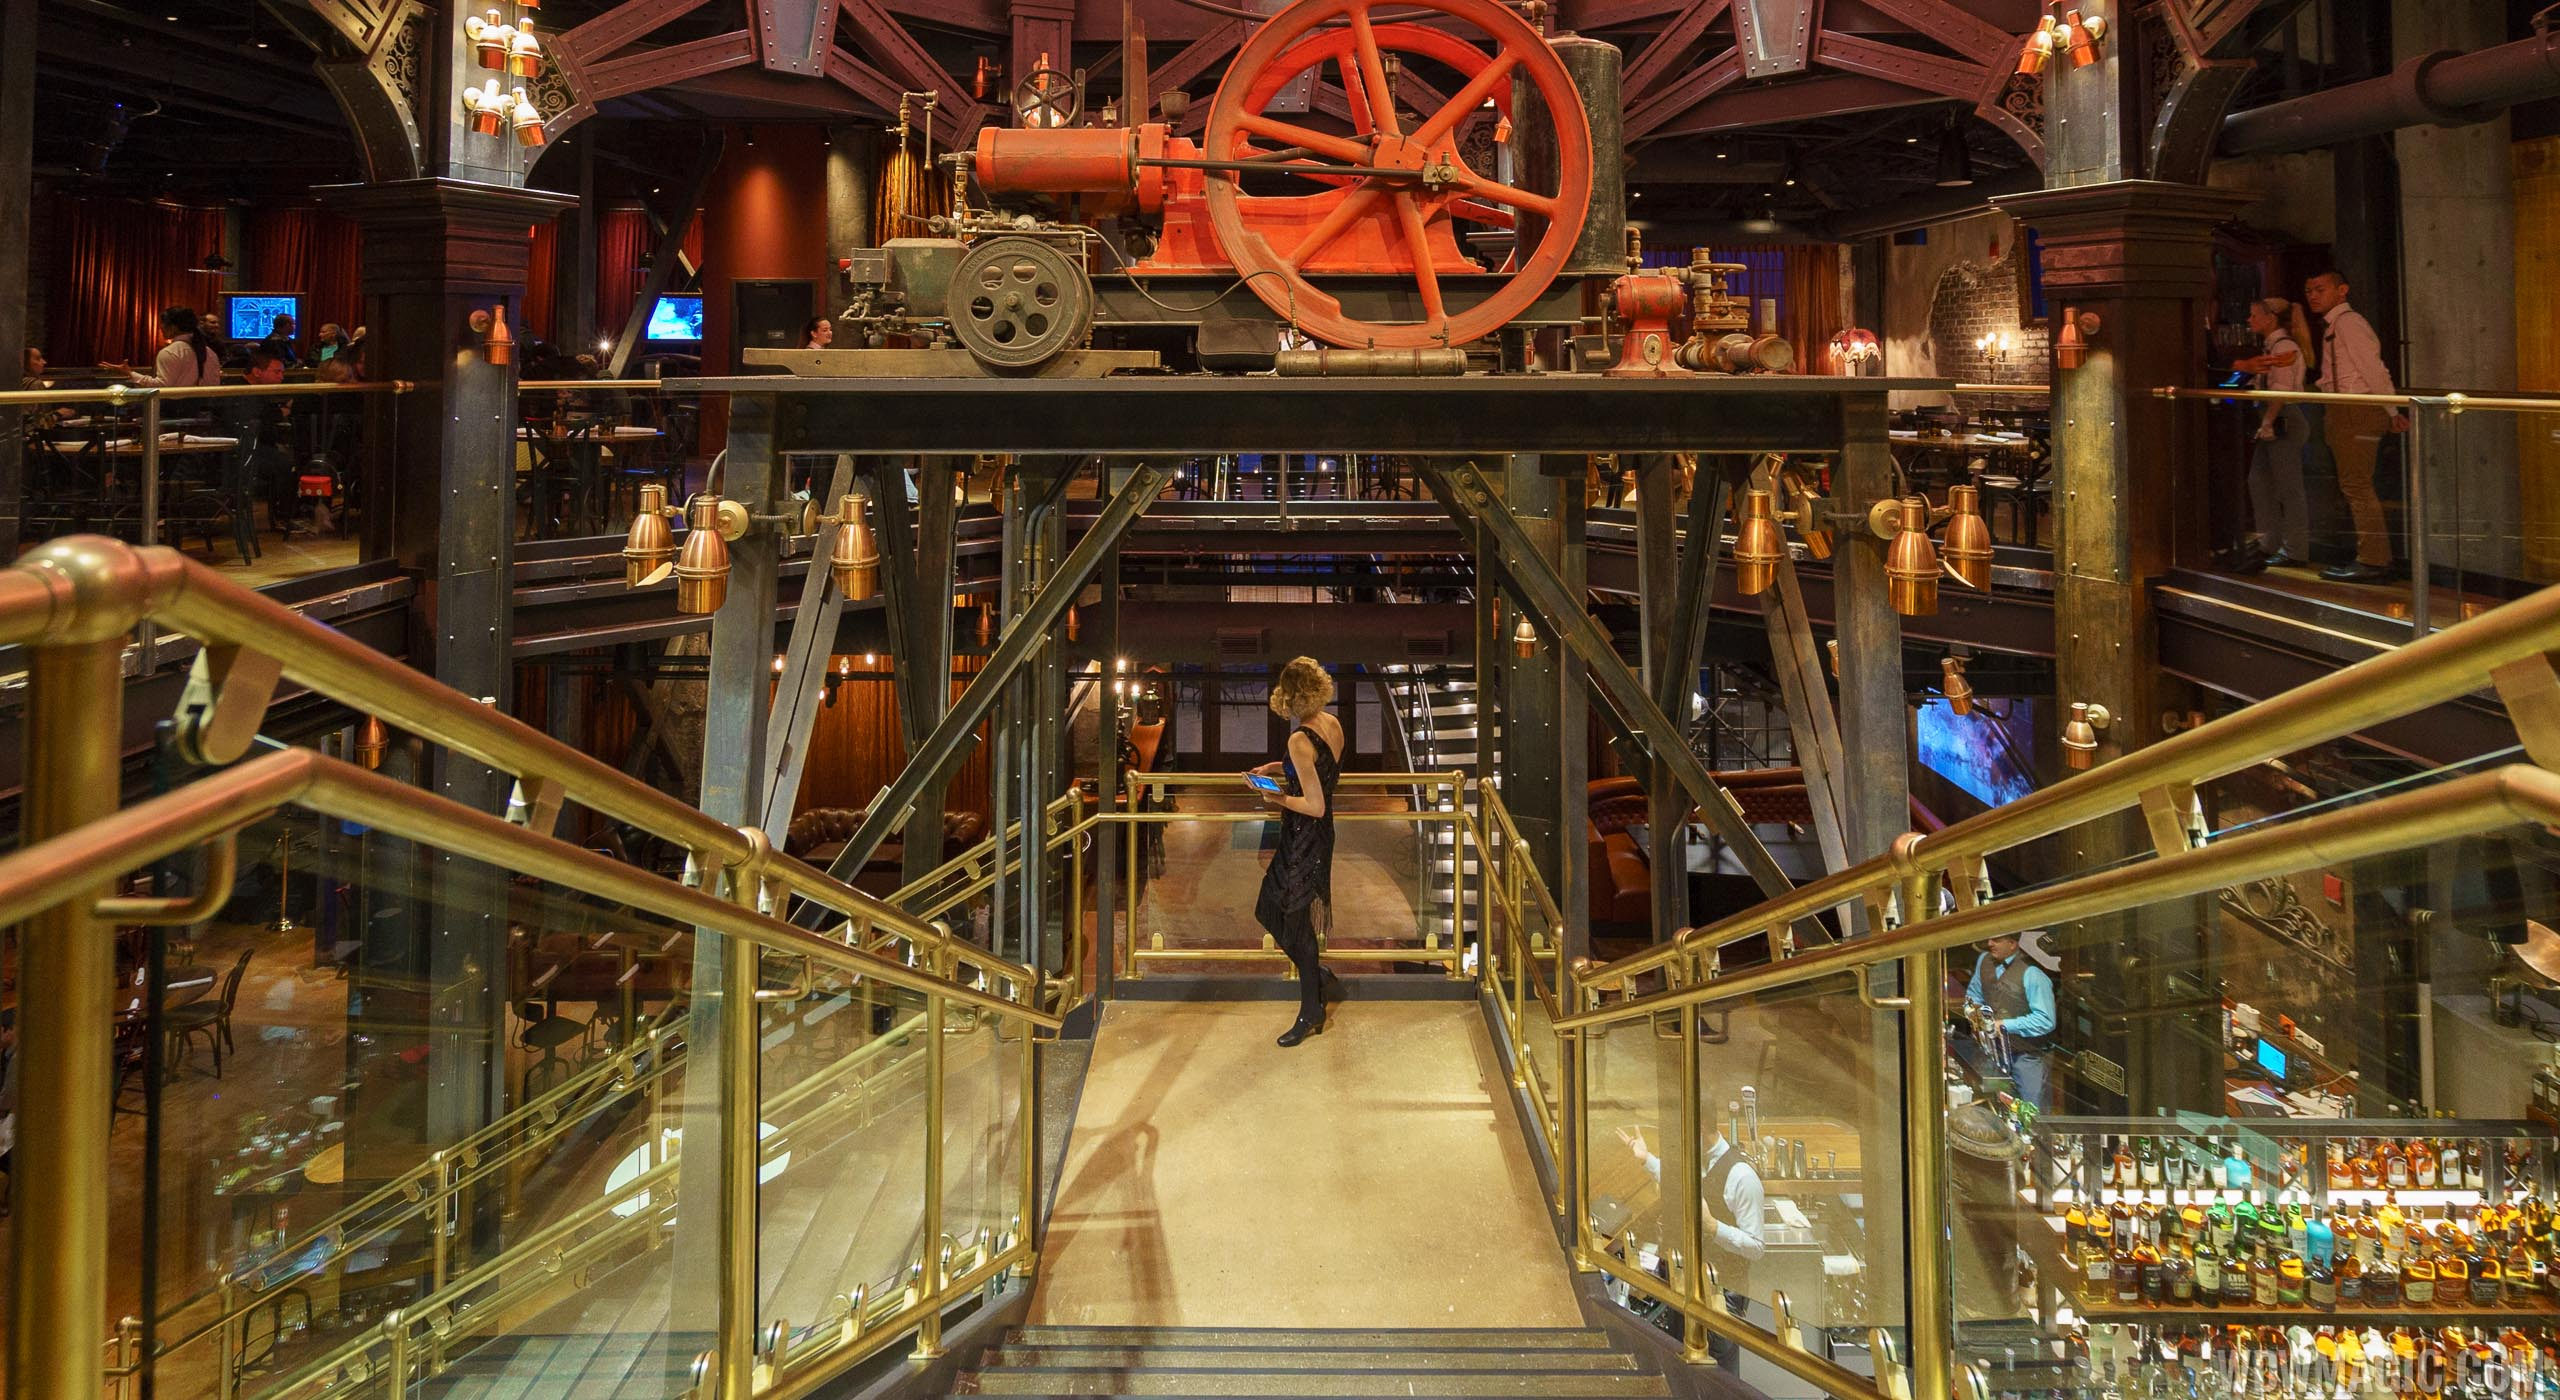 REVIEW - The Edison at Disney Springs